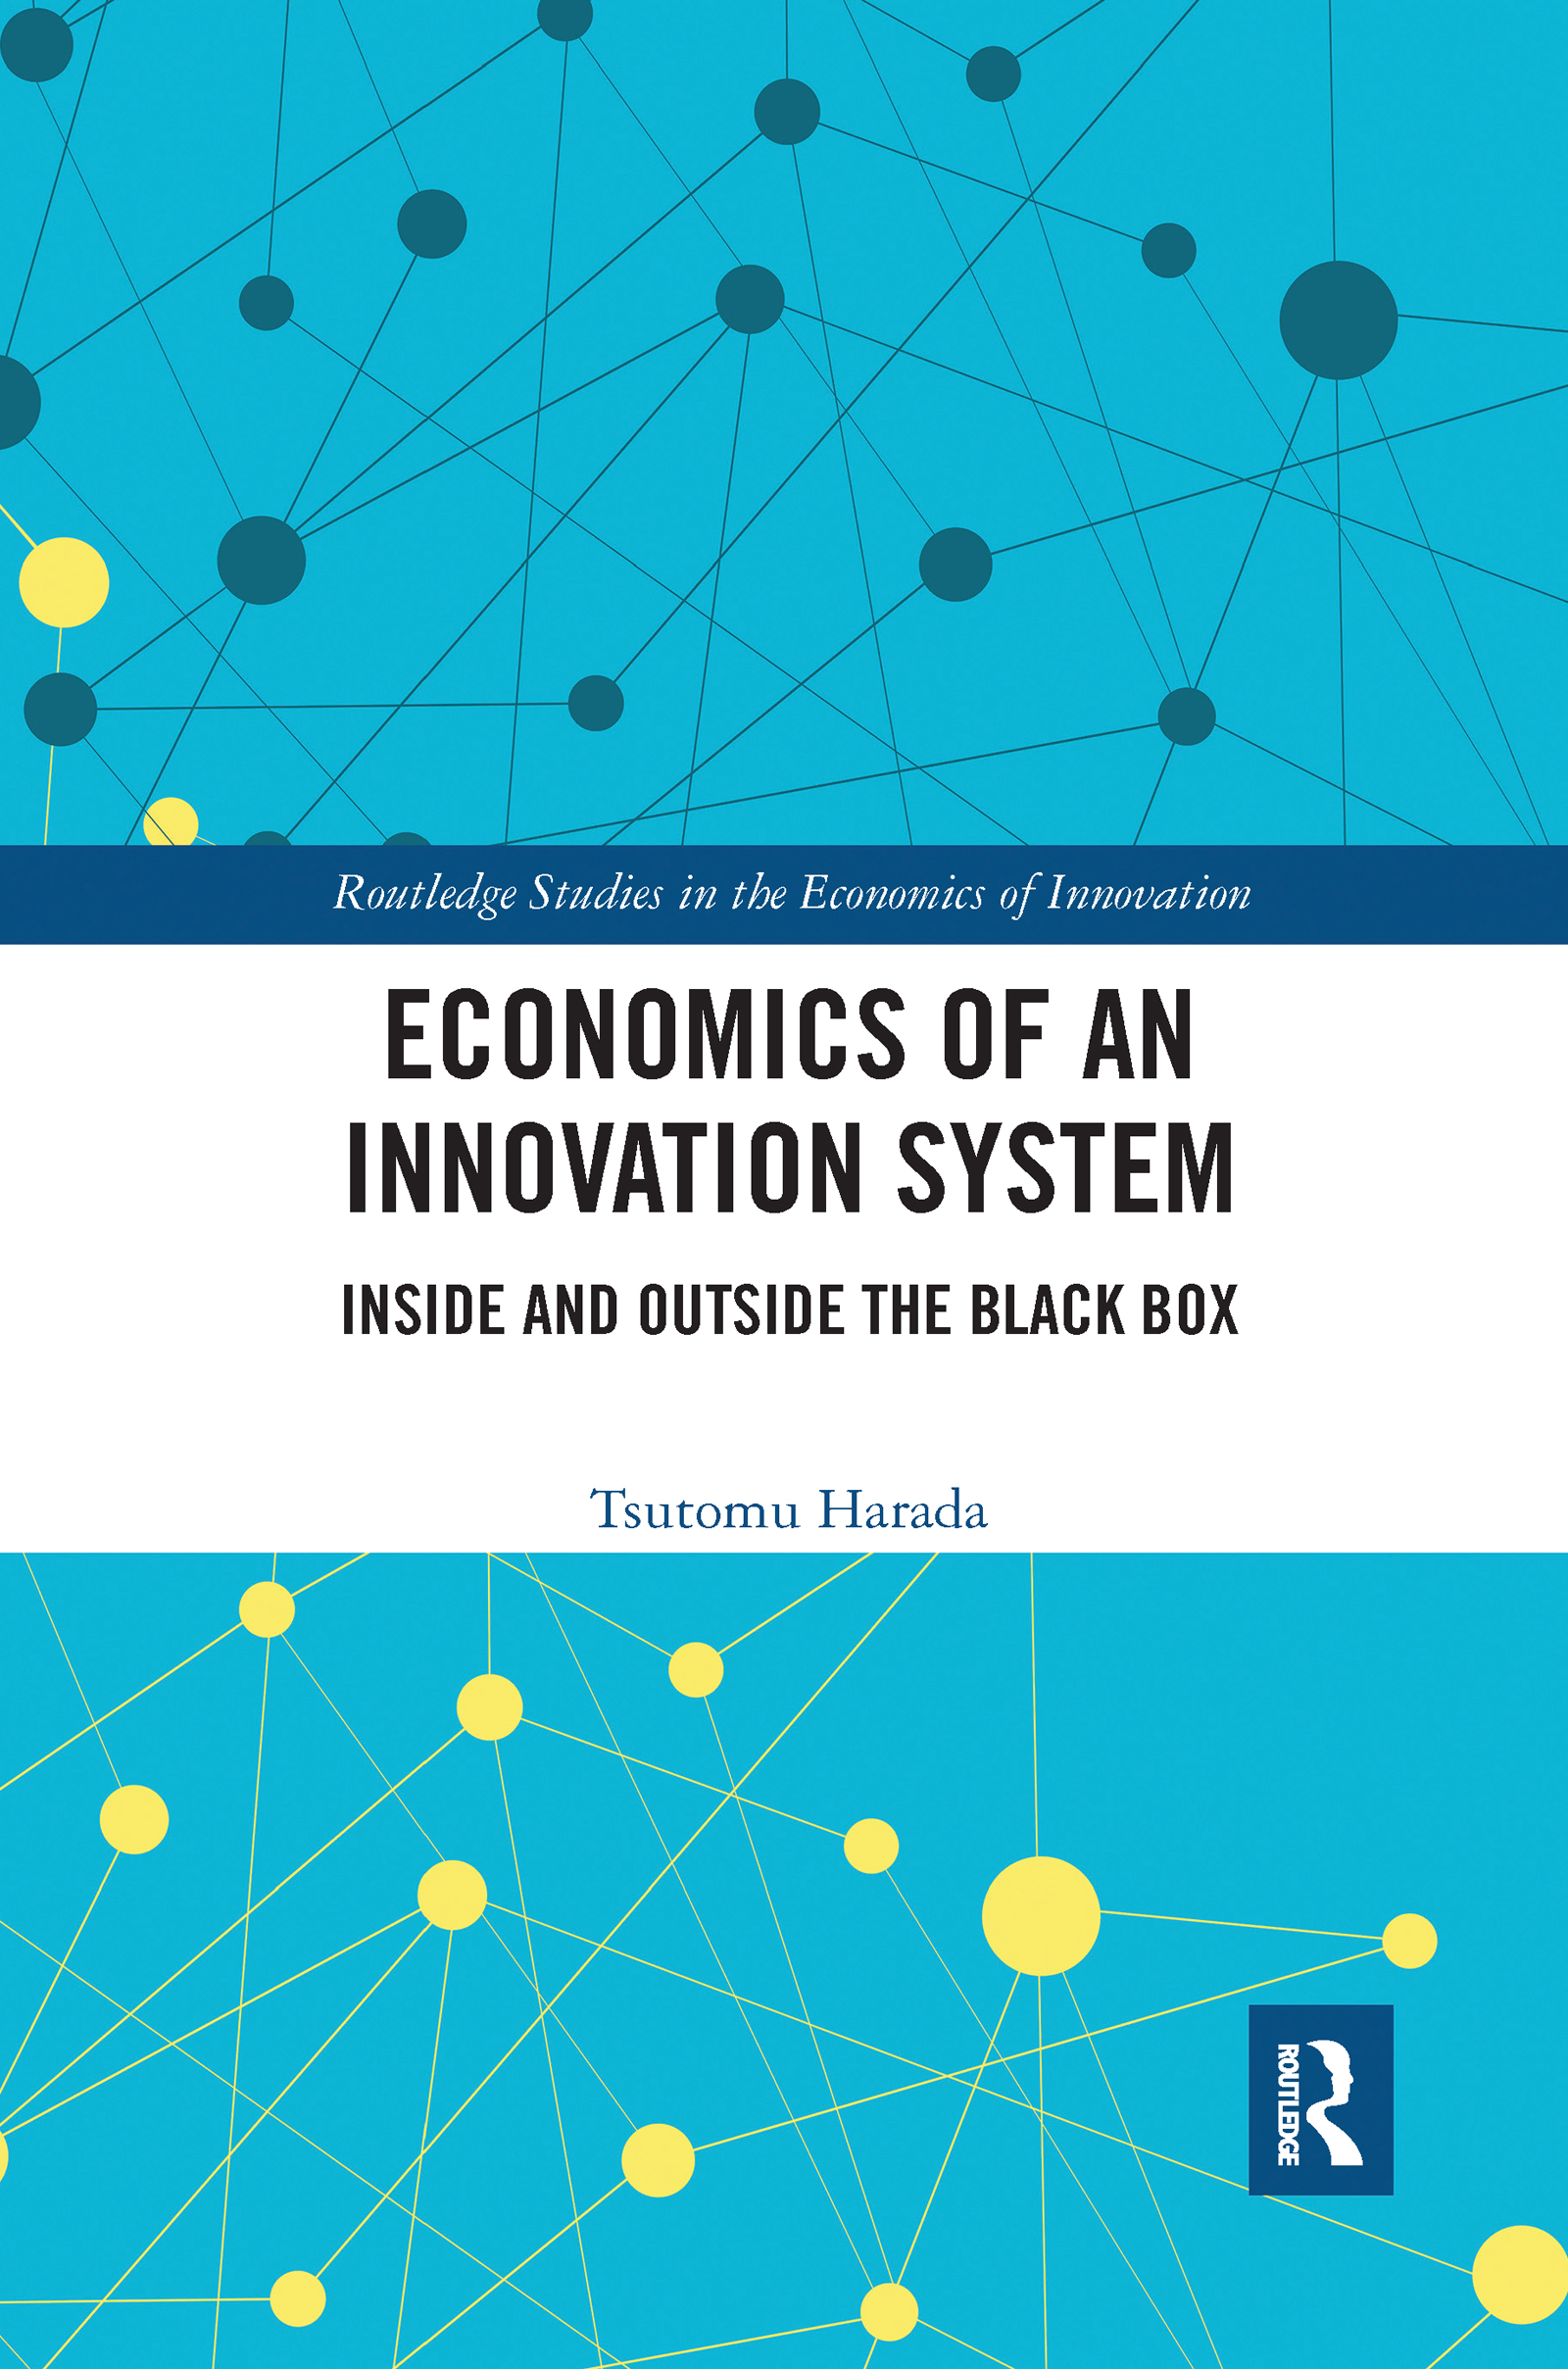 Economics of an Innovation System